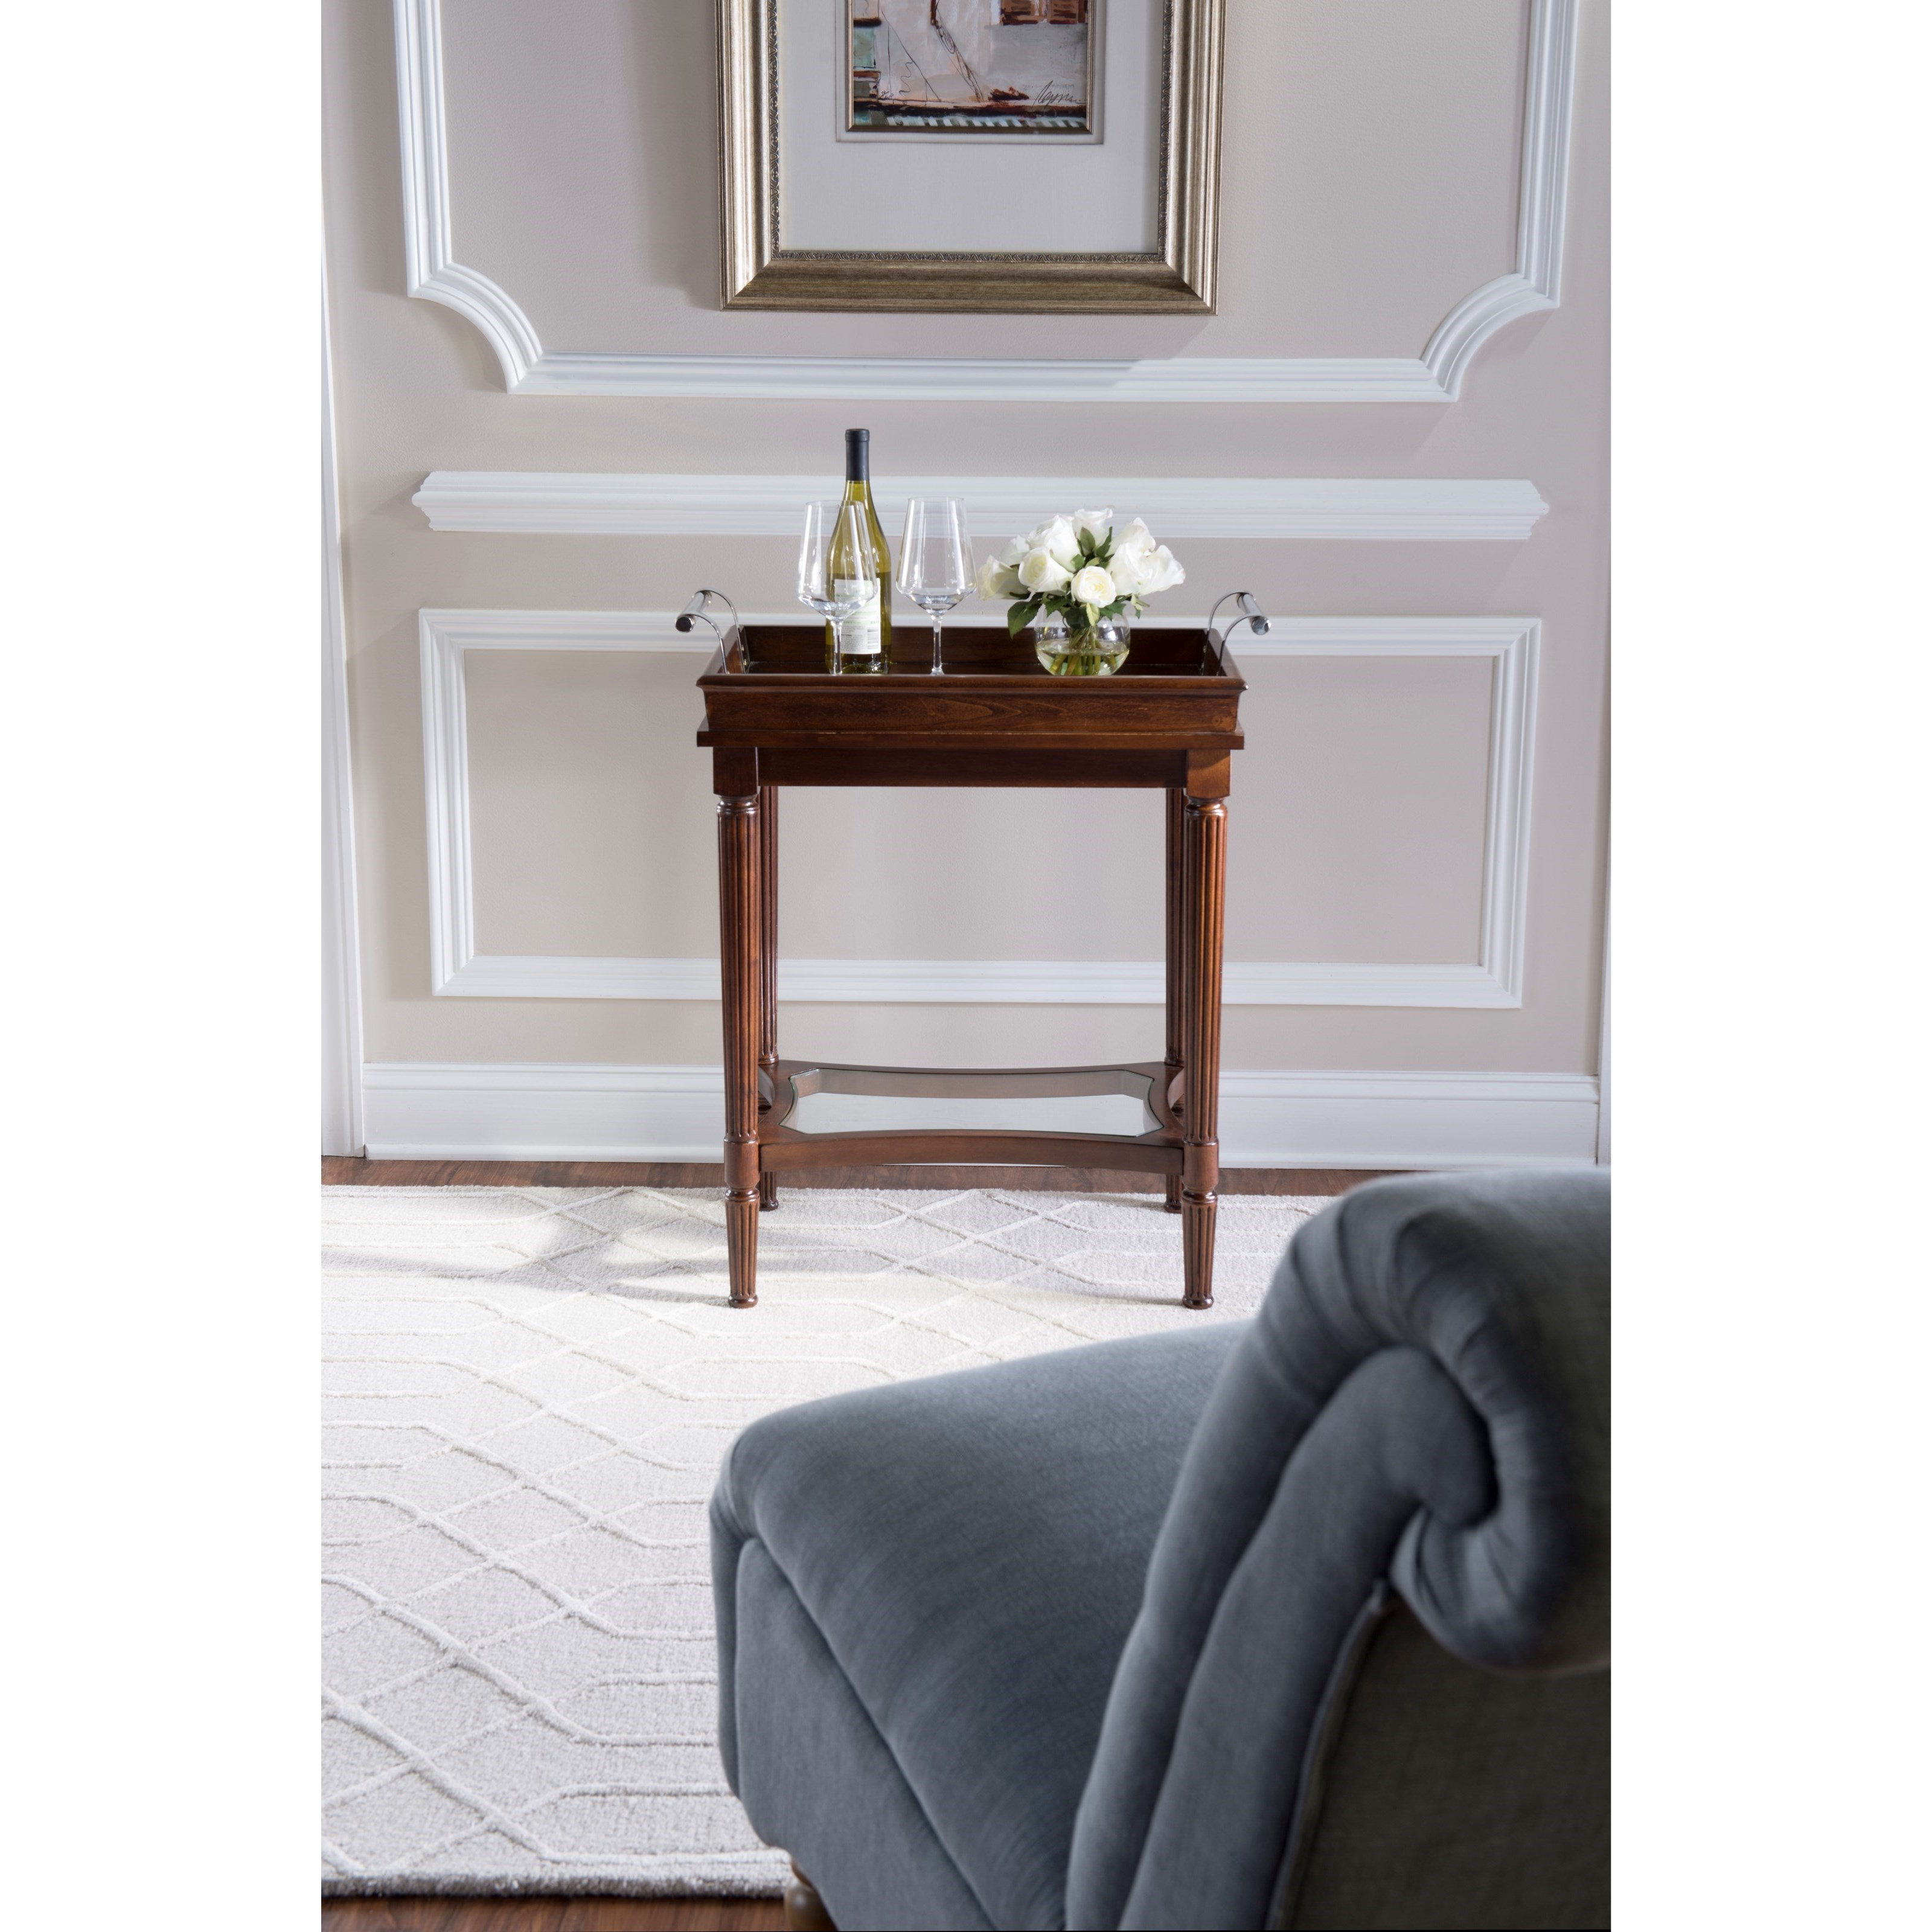 Accent Furniture Masterpiece Mia Serving Tray Table by Powell at Nassau Furniture and Mattress